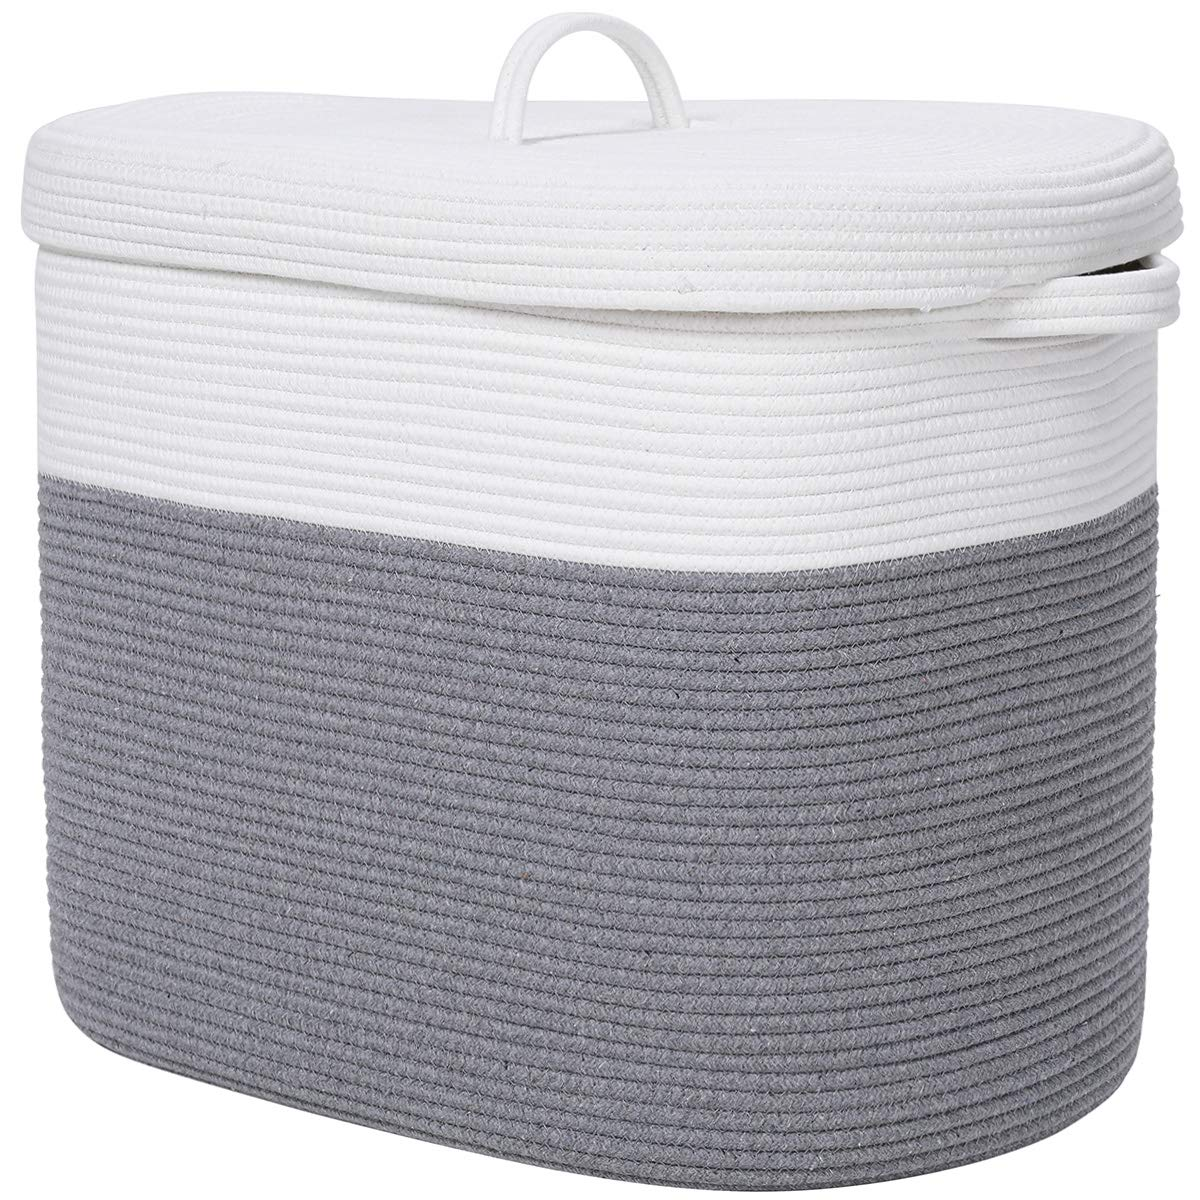 """22""""x14""""x18"""" Rectangular Extra Large Storage Basket with Lid, Cotton Rope Storage Baskets, Woven Laundry Hamper, Toy Storage Bin, for Toys Blanket in Living Room, Baby Nursery, Grey Rectangular Basket"""